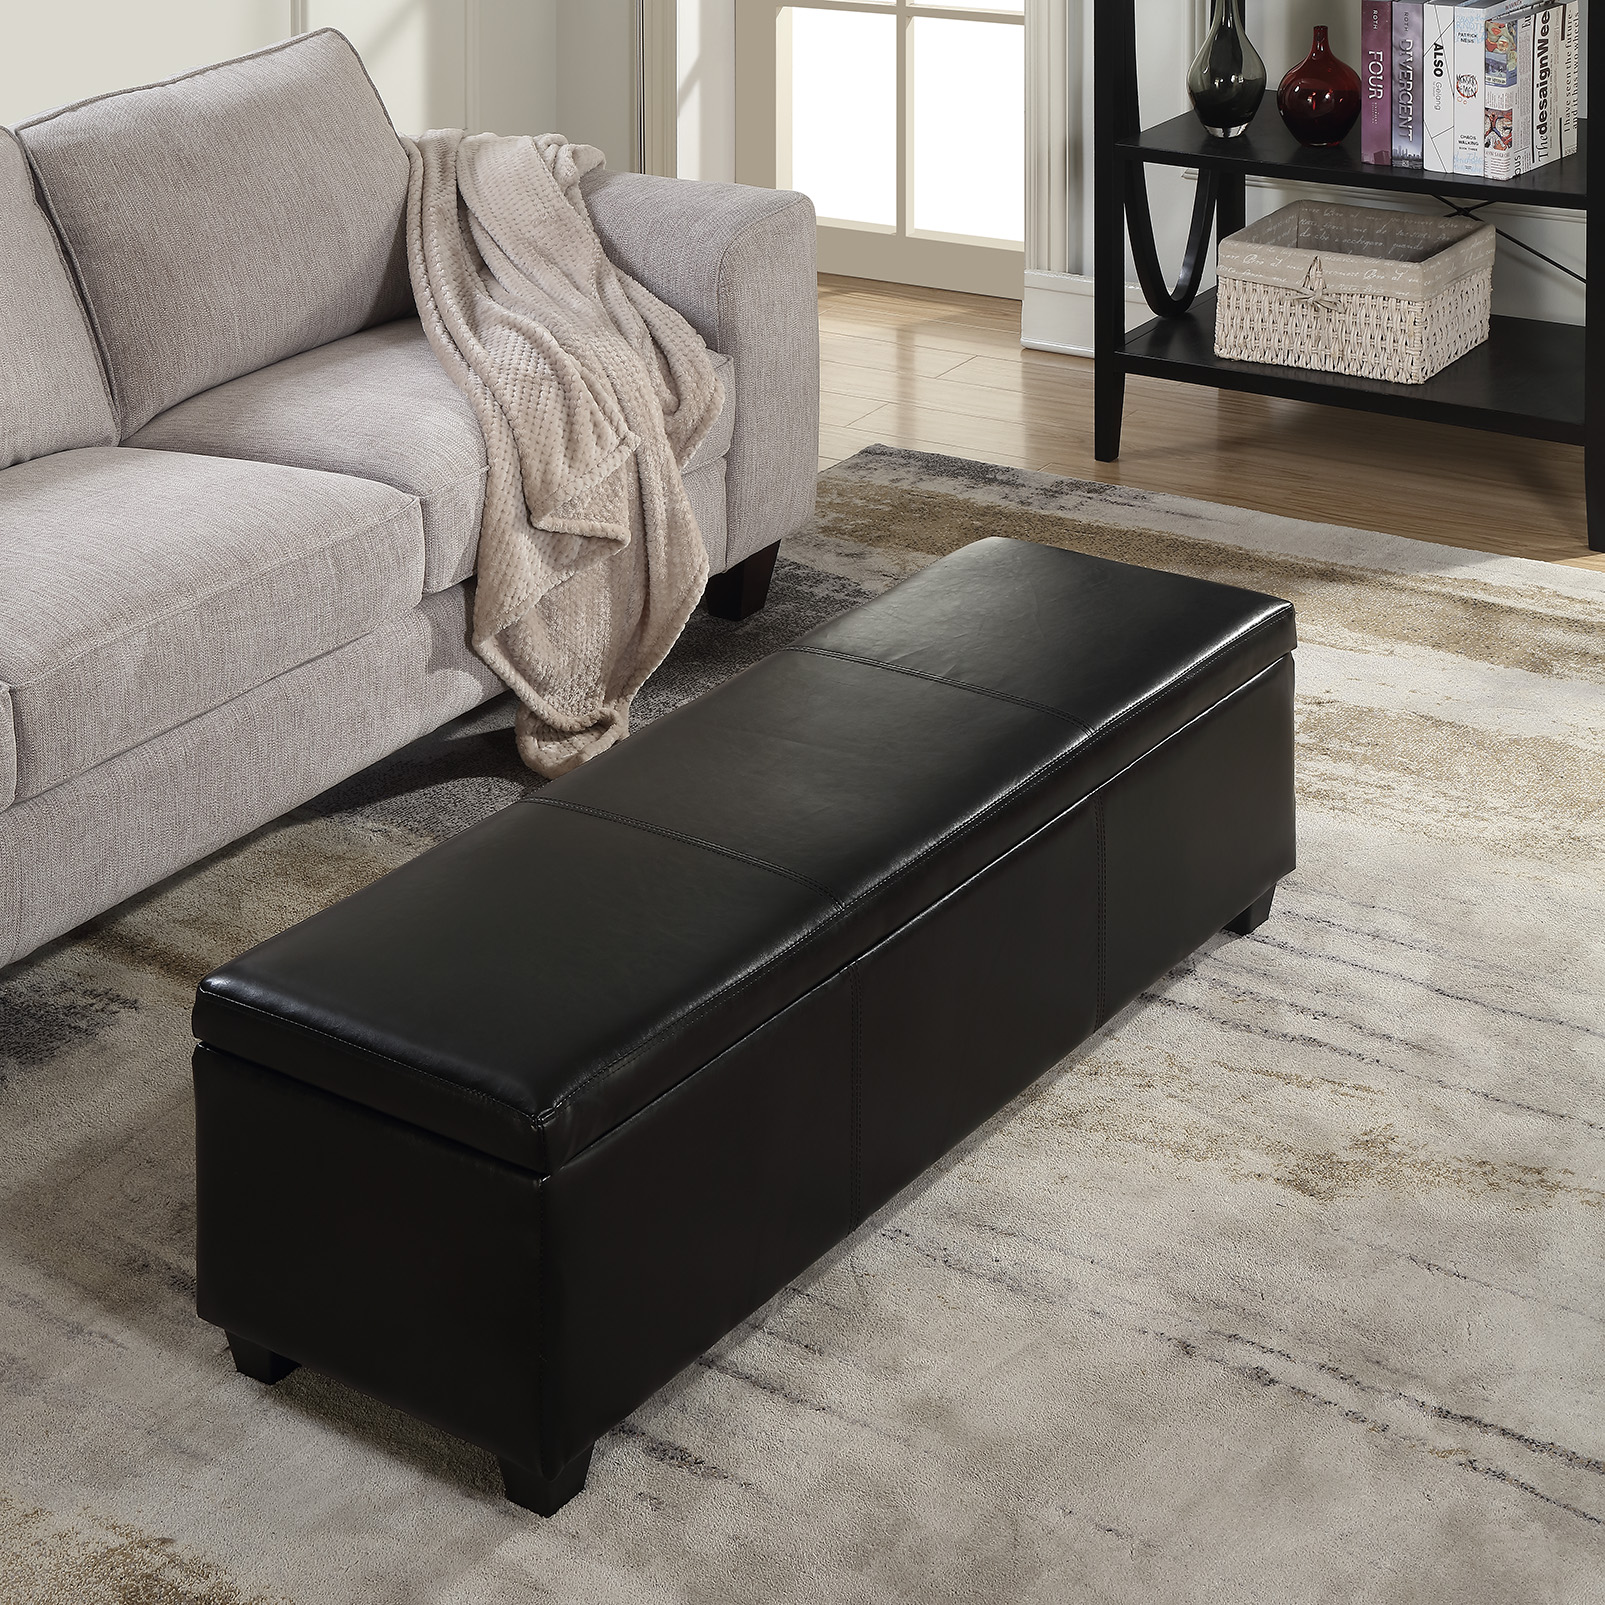 Black Faux Leather Storage Foot Rest Sofa Ottoman Bench